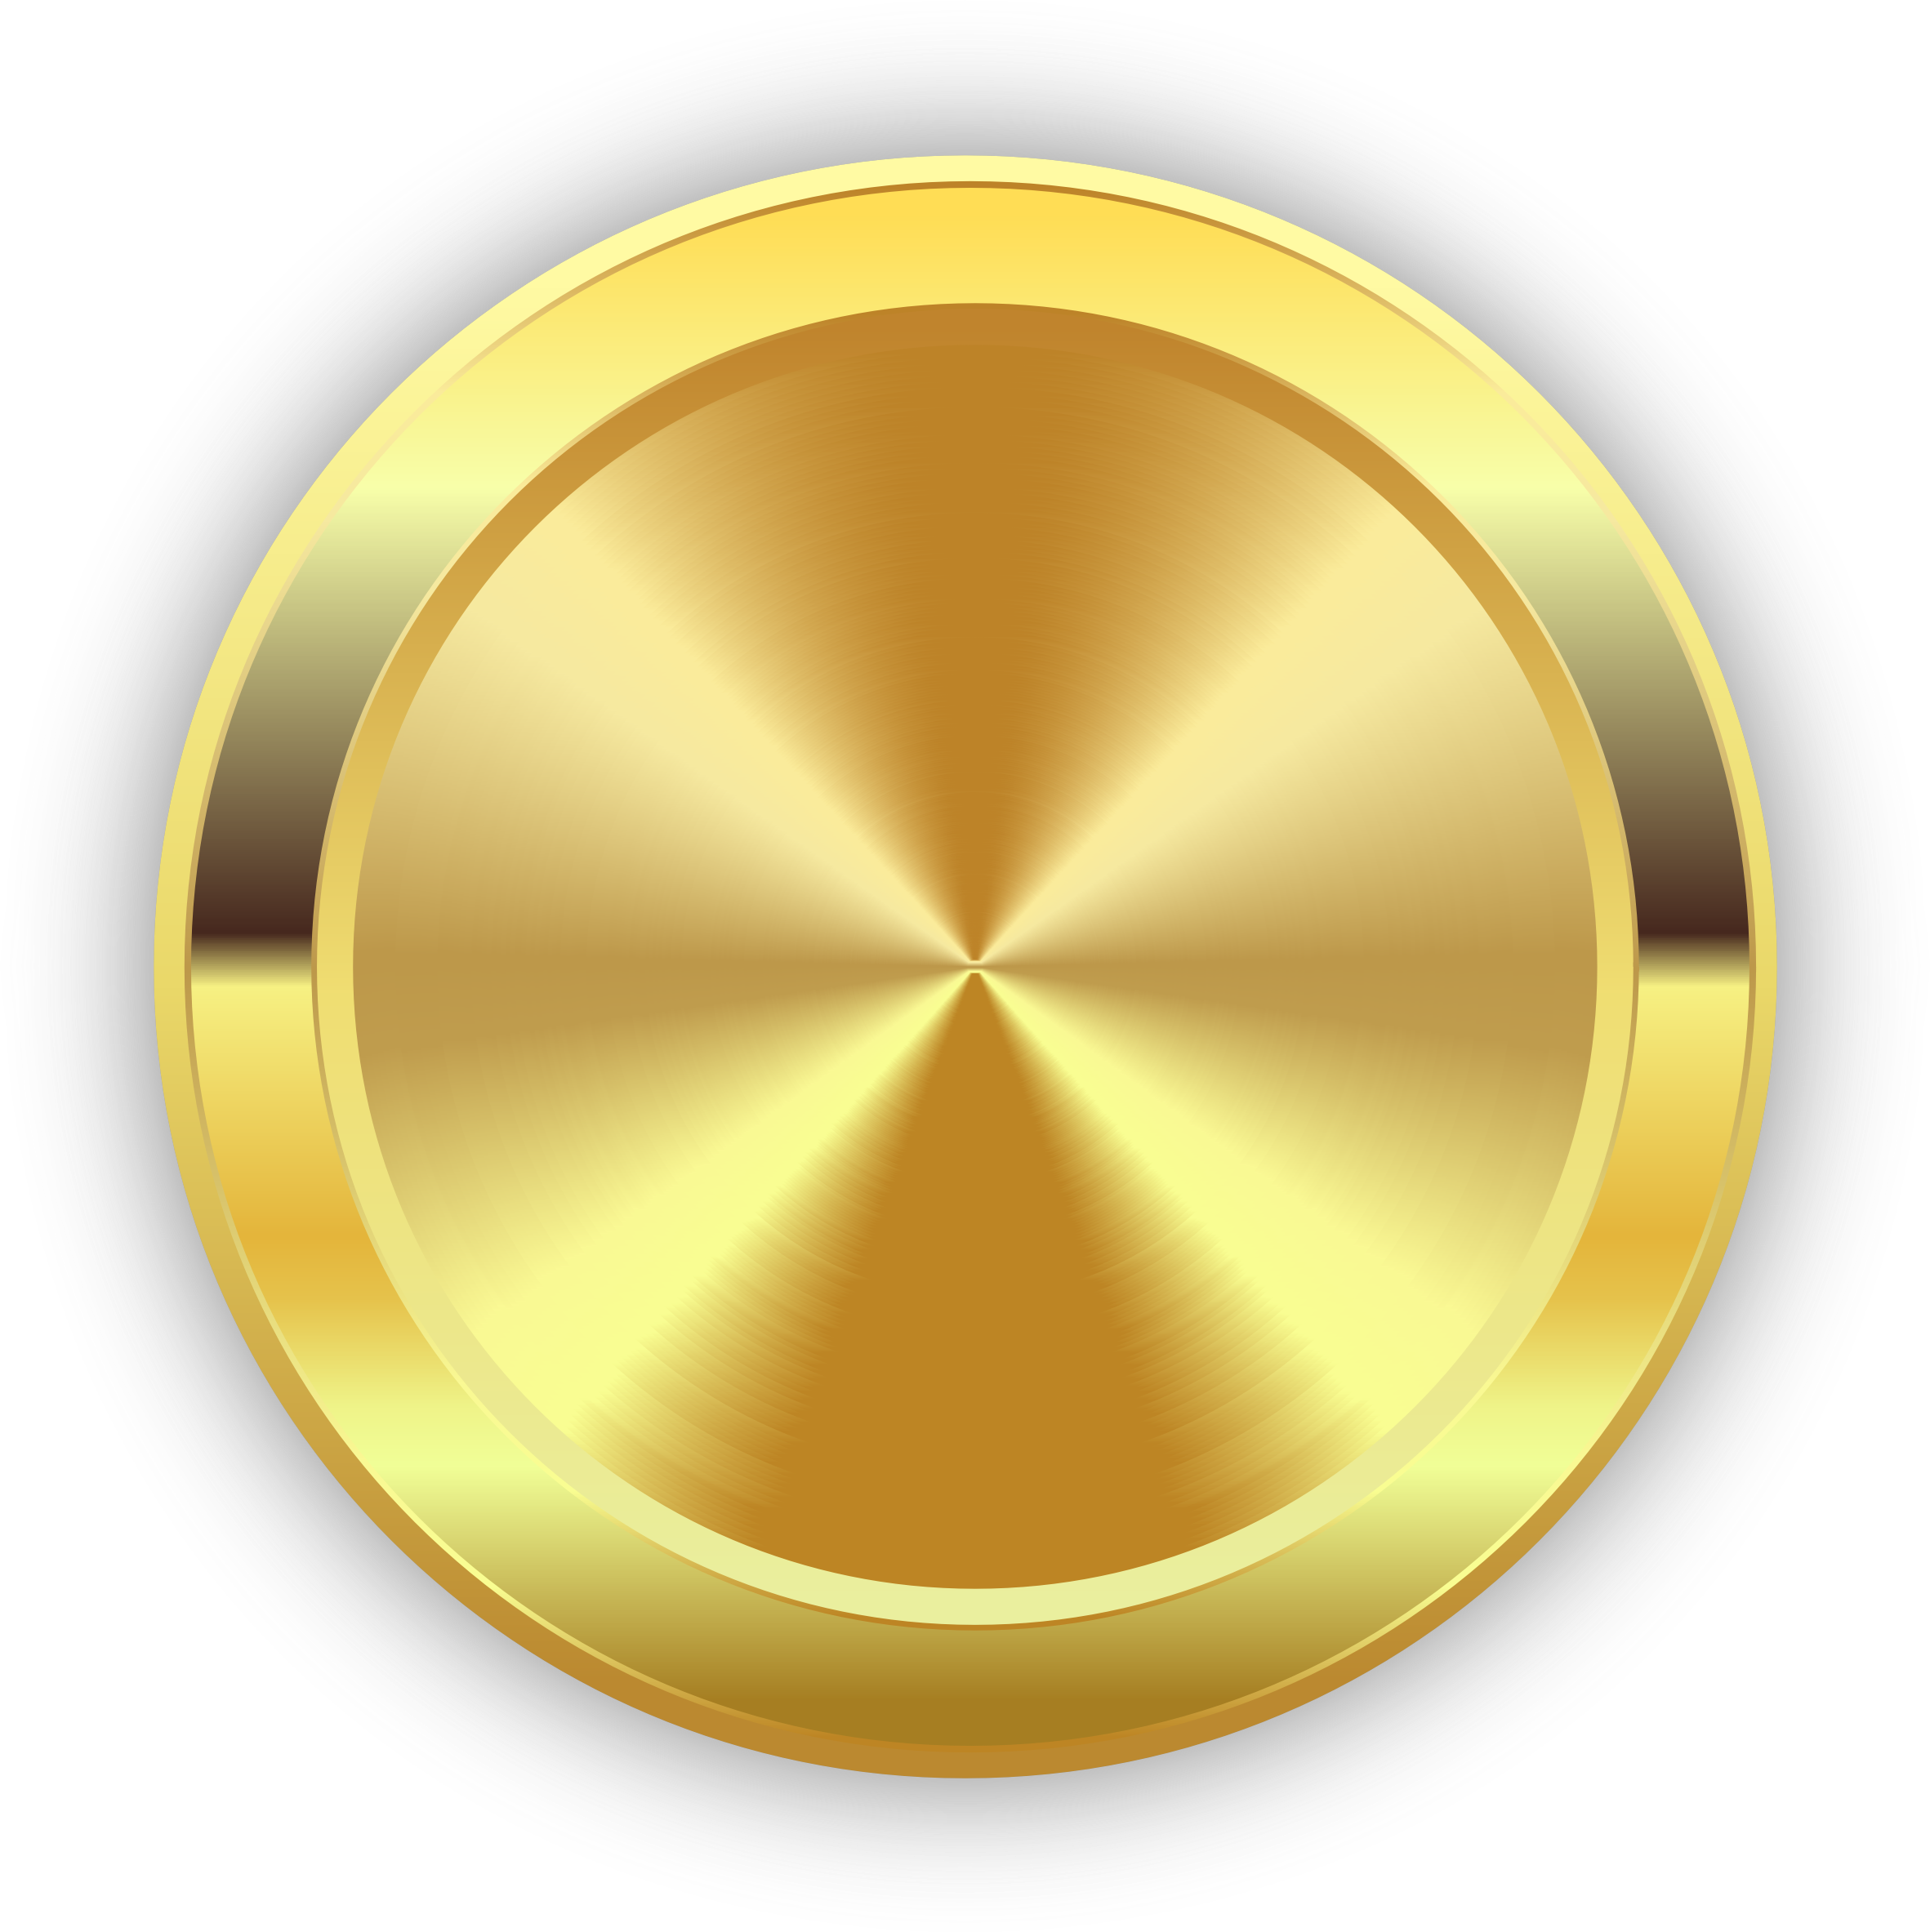 Gold badge png. Round golden icons free